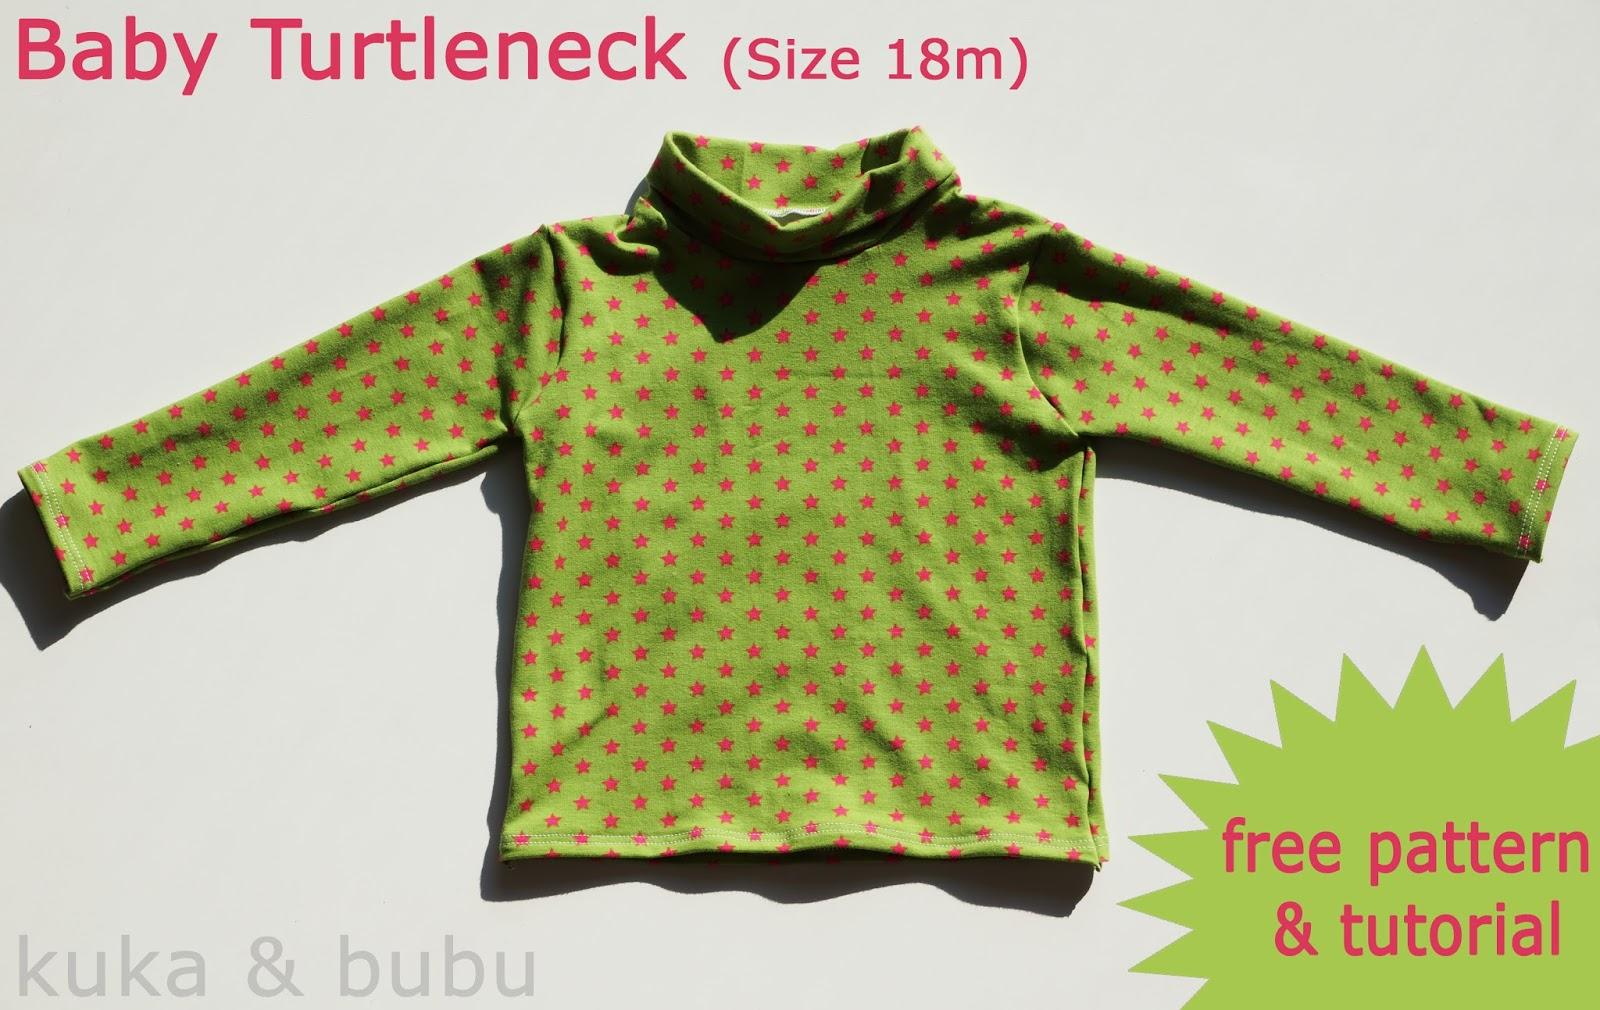 http://kukaandbubu.blogspot.com.es/2014/02/tutorial-free-pattern-turtleneck-for.html